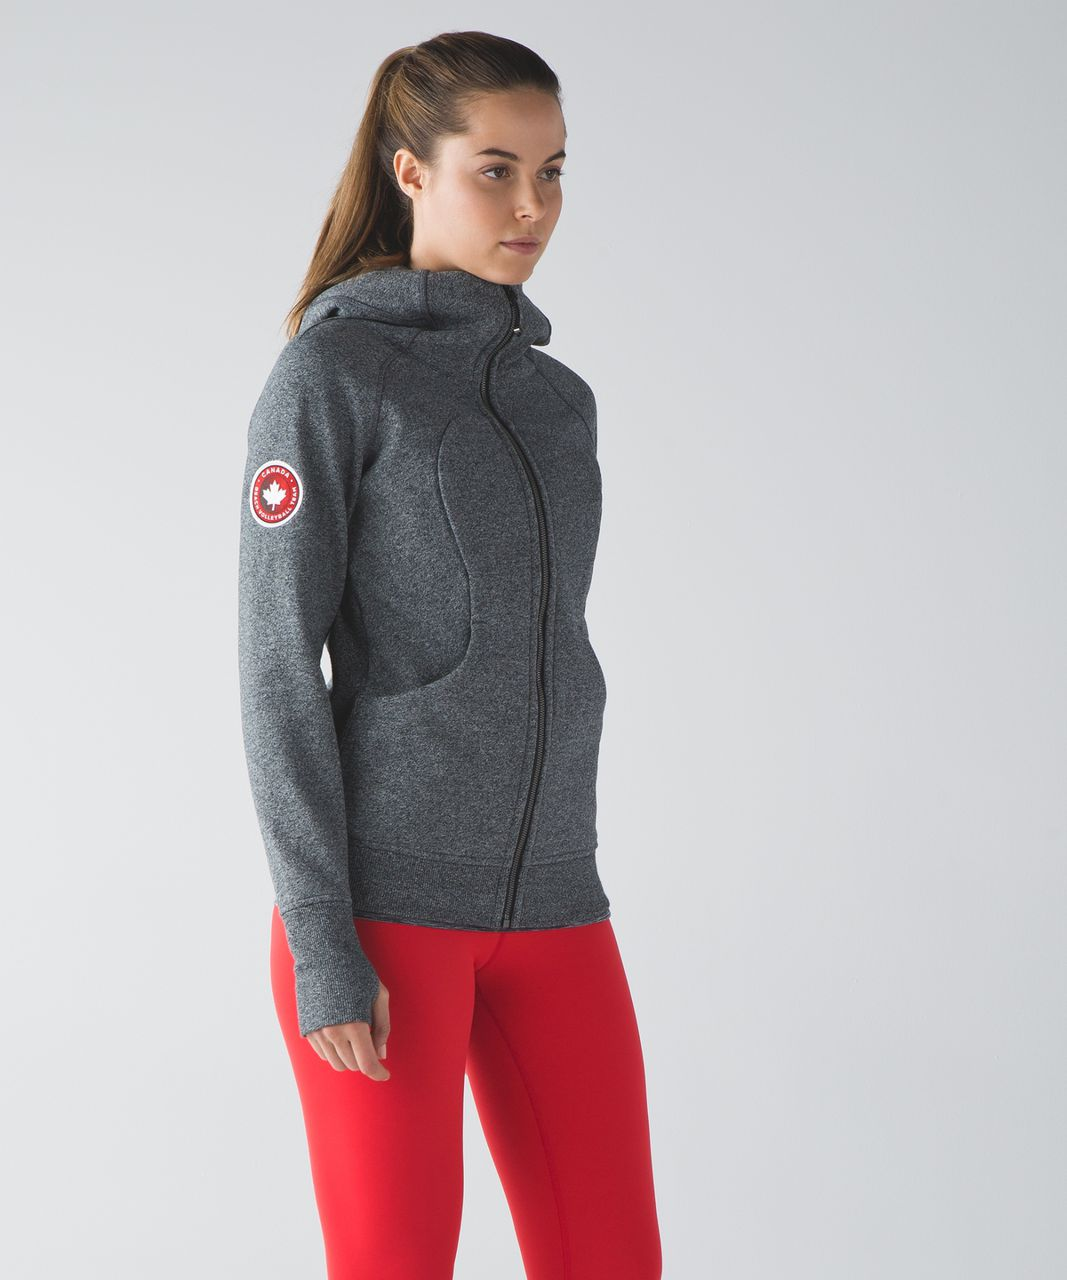 Lululemon Scuba Hoodie III (Fan Gear) - Heathered Speckled Black / Black